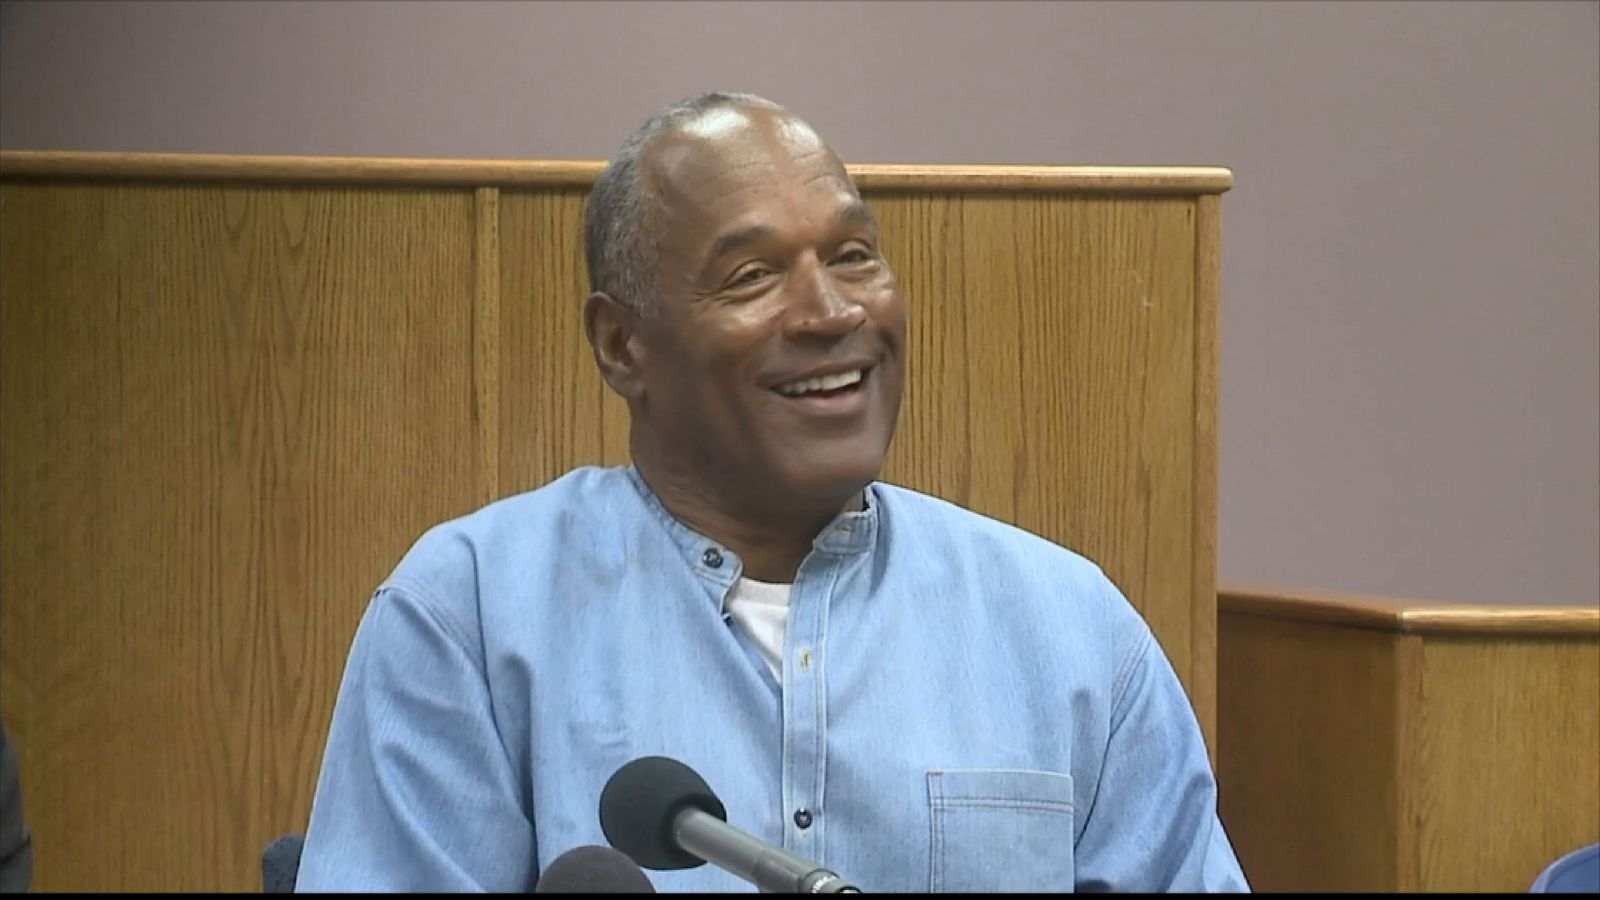 Alleged murderer OJ Simpson to be freed from prison